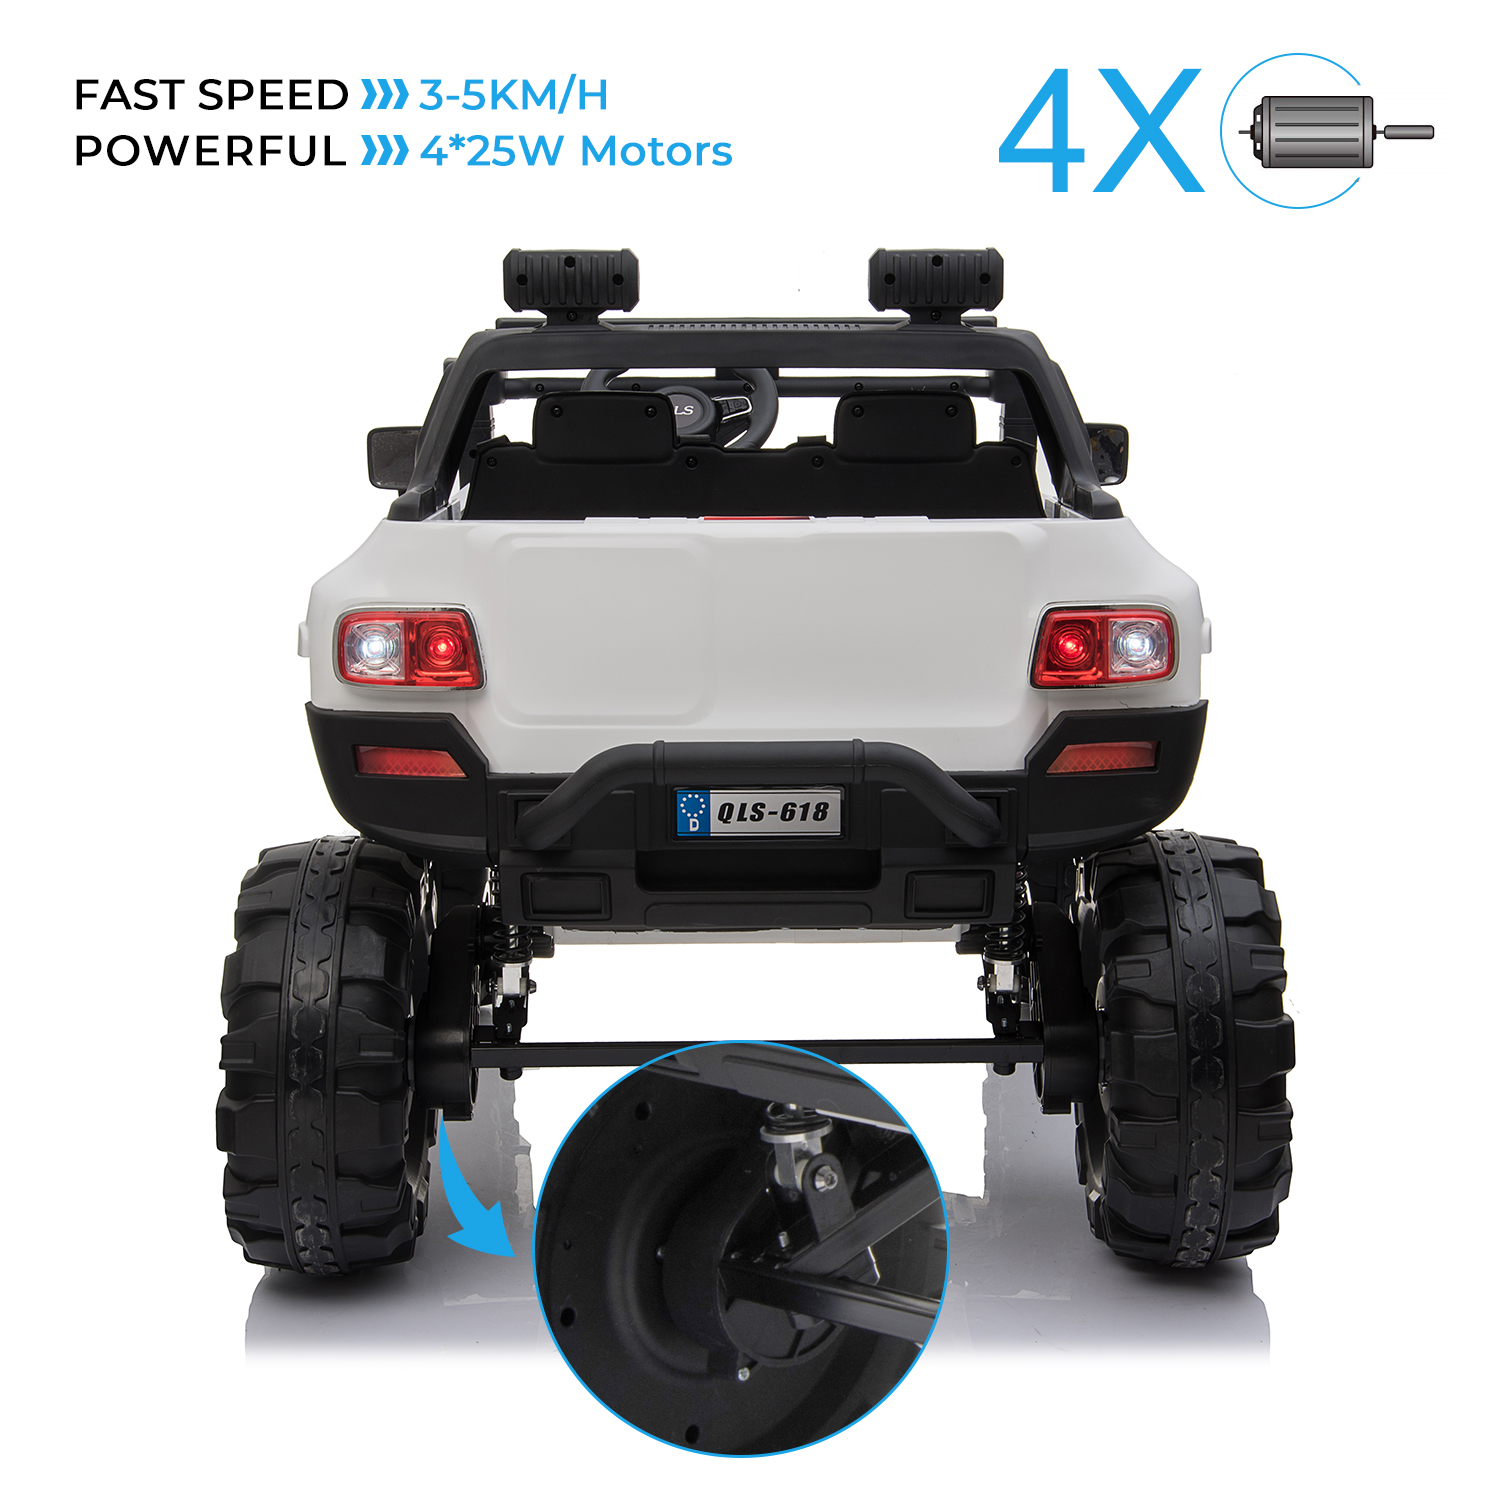 2-Seaters-4-4-Off-Road-Electric-12V-Ride-on-Car-with-Remote-Control miniature 30